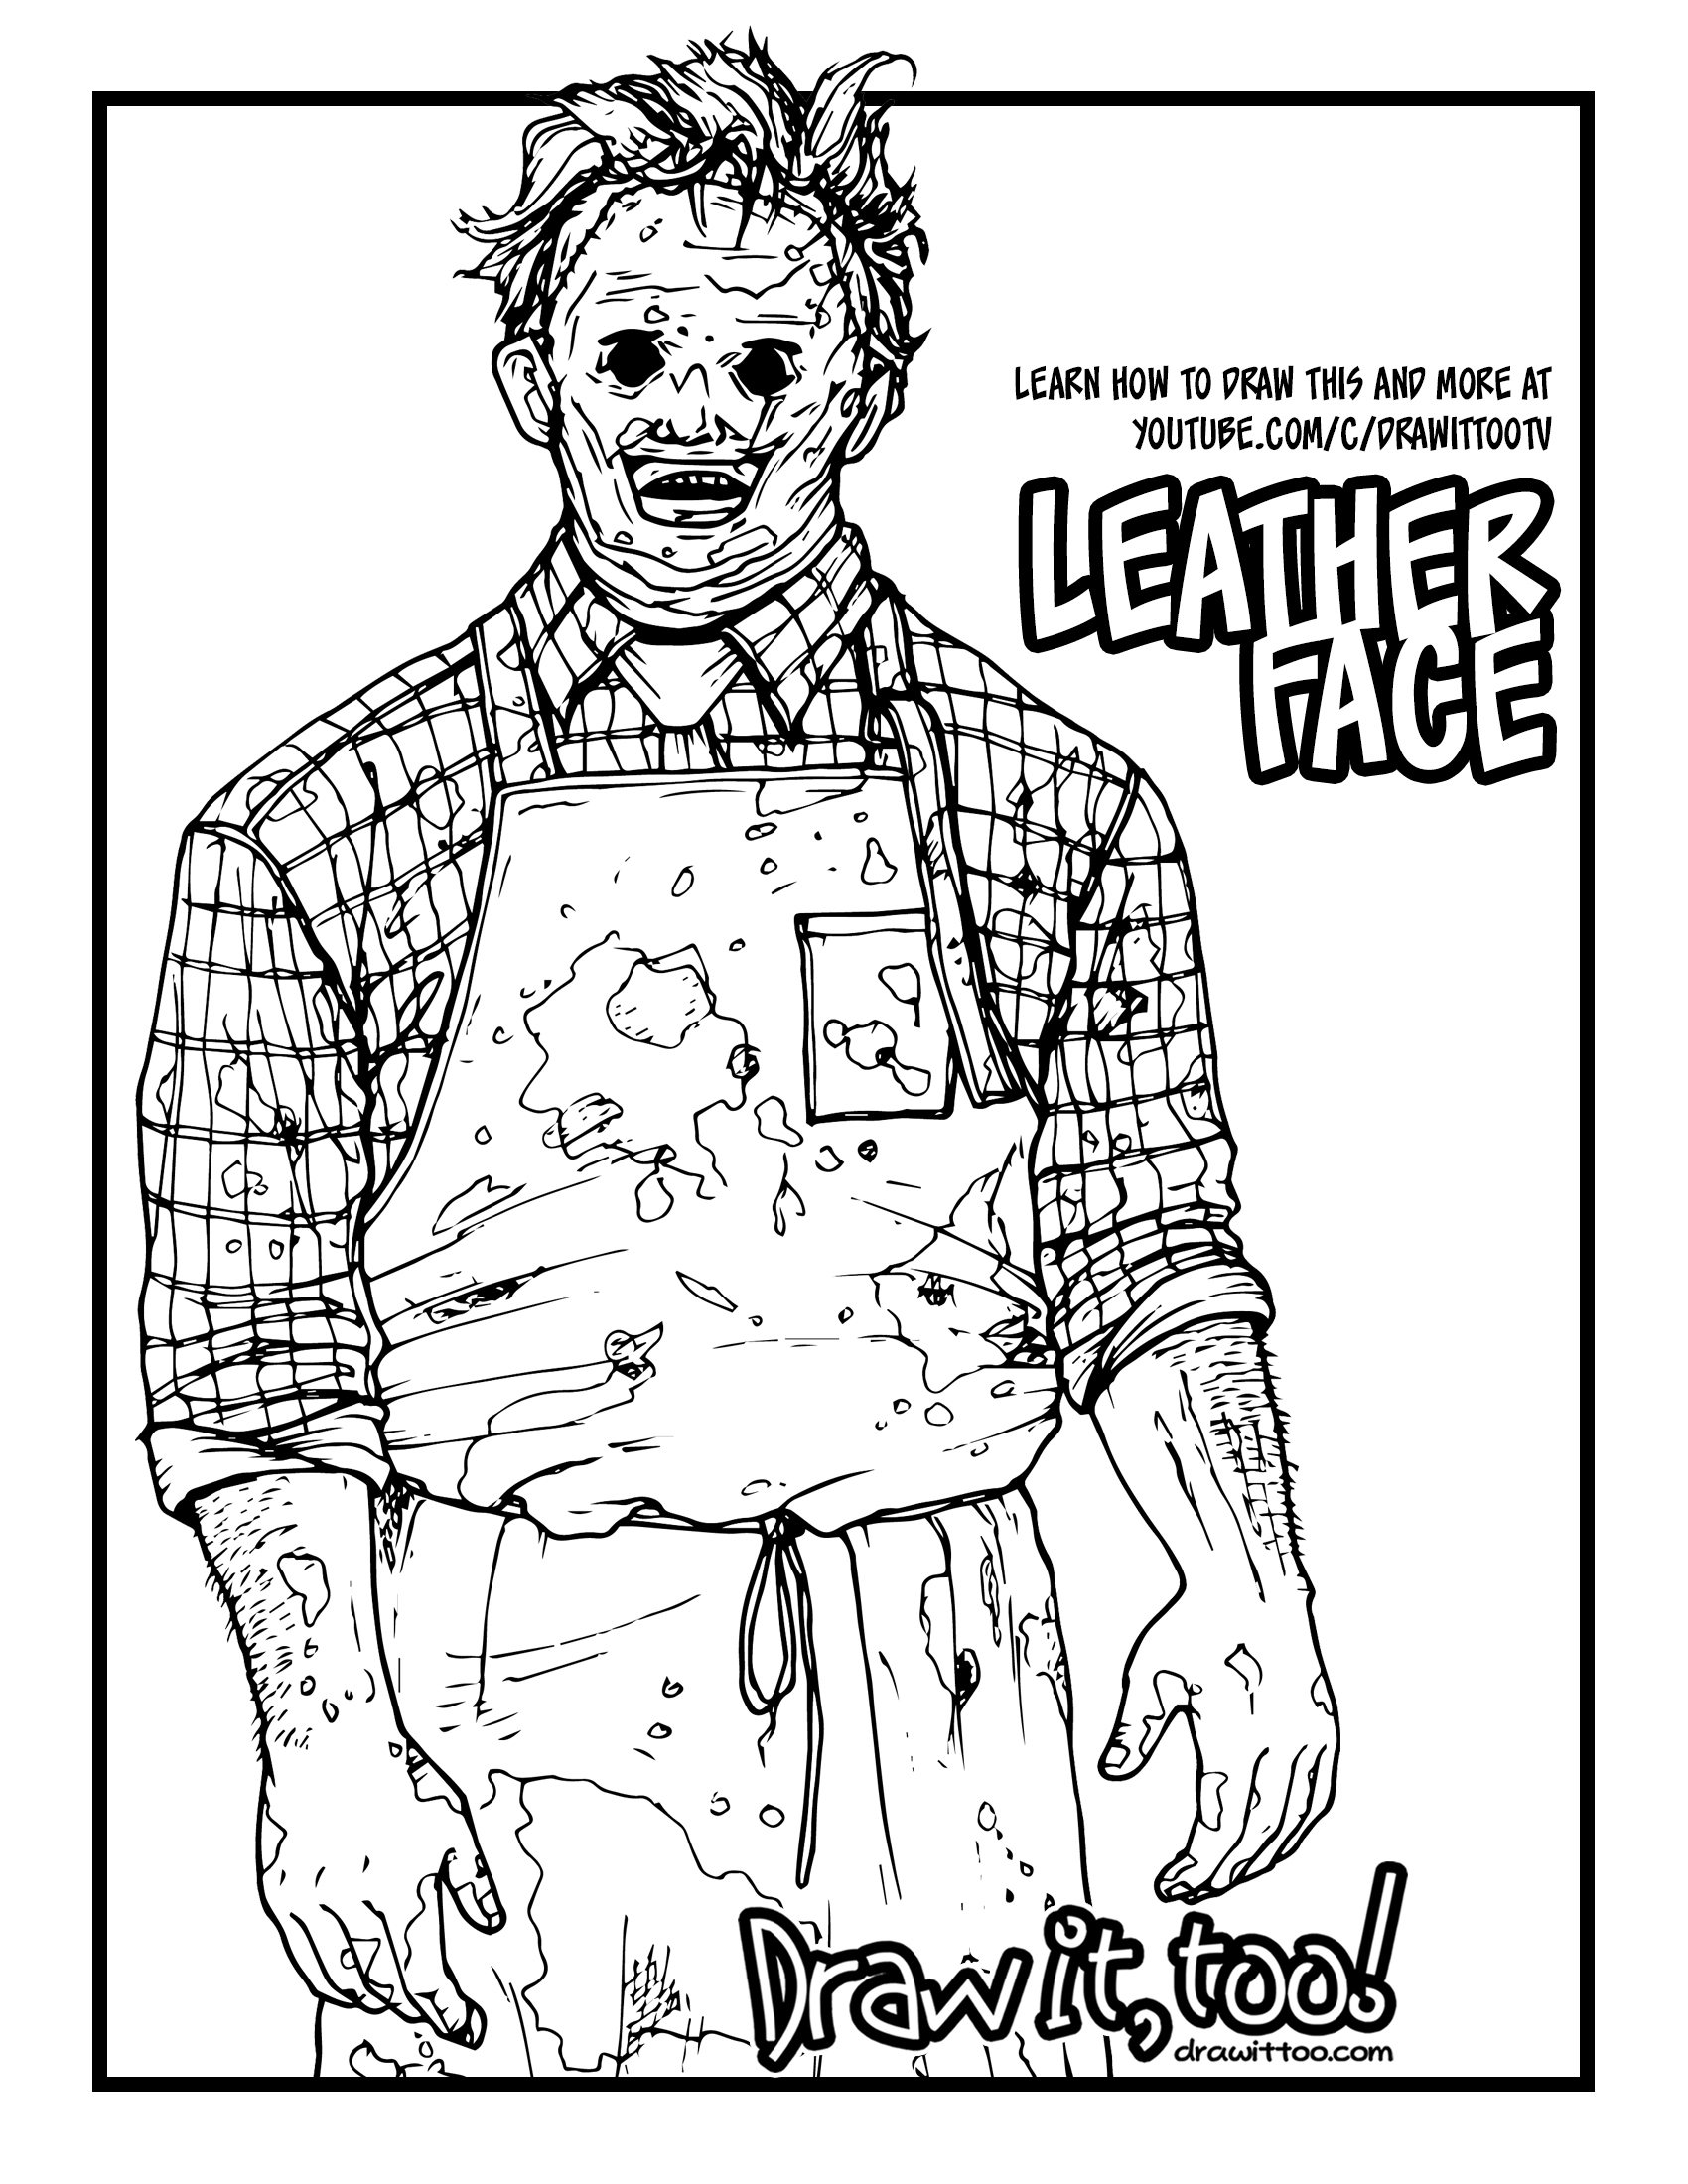 How to Draw LEATHERFACE (The Texas Chainsaw Massacre